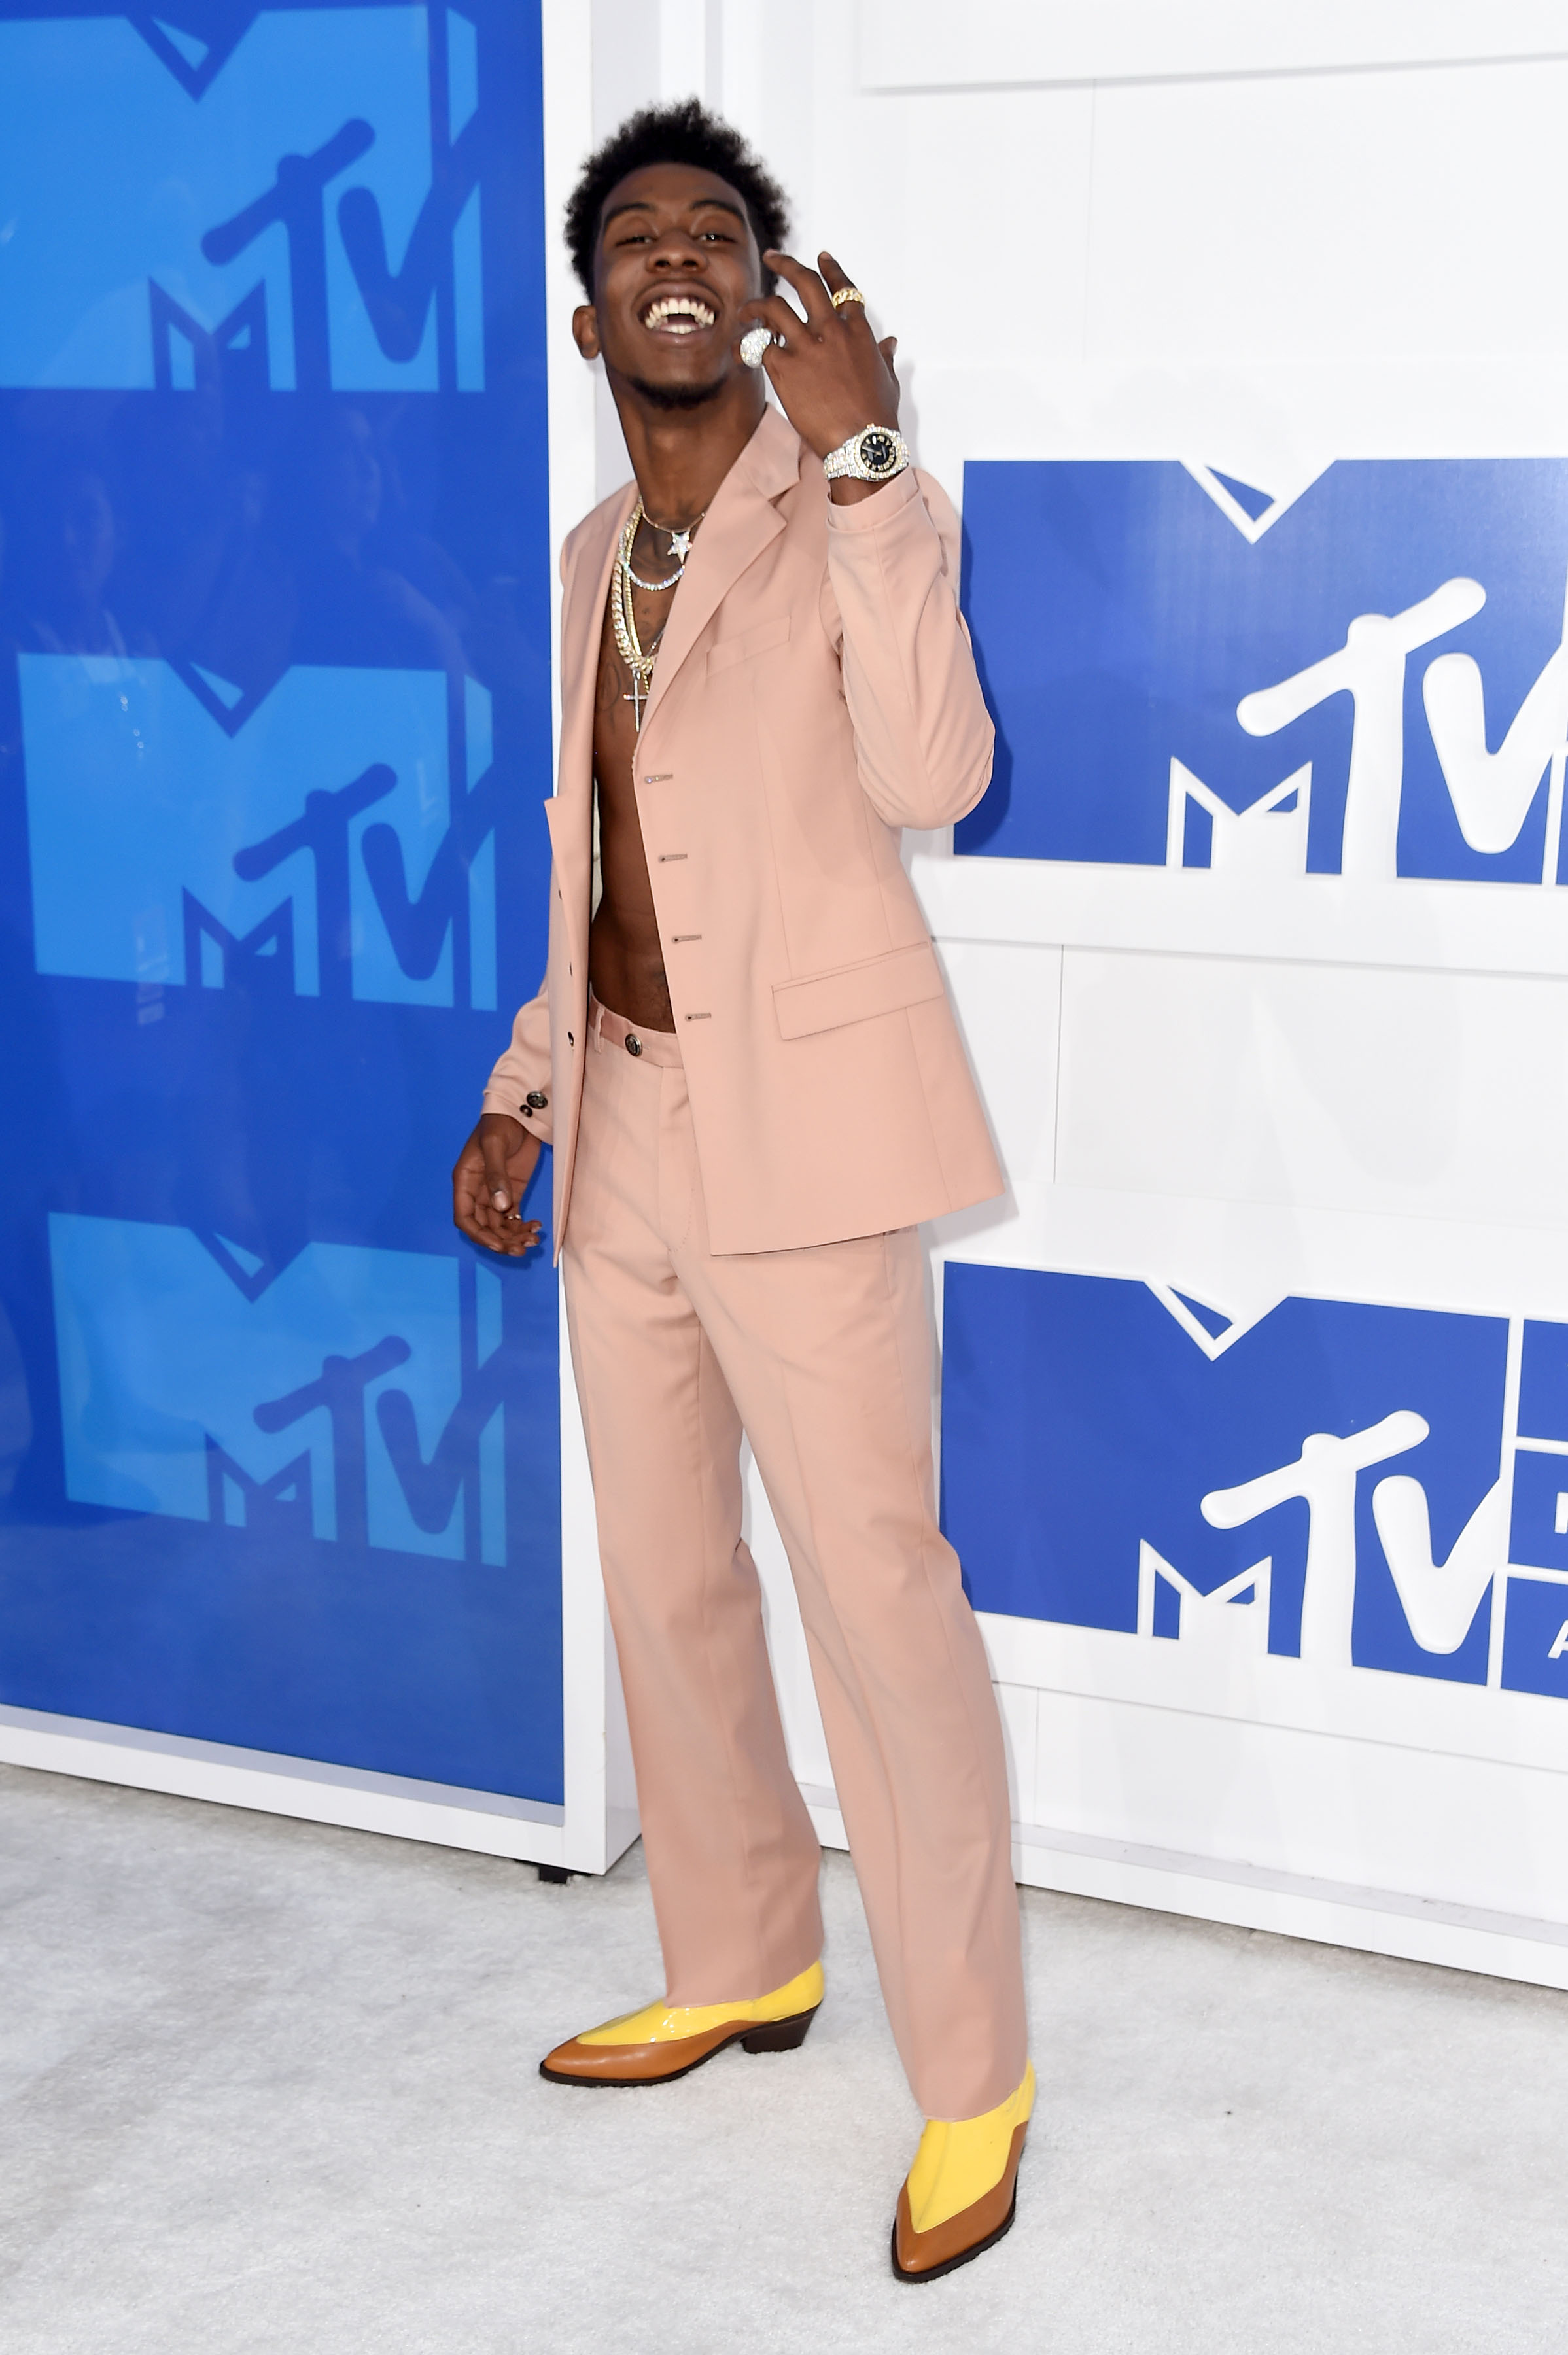 Desiigner attends the 2016 MTV Video Music Awards at Madison Square Garden on Aug. 28, 2016 in New York City.